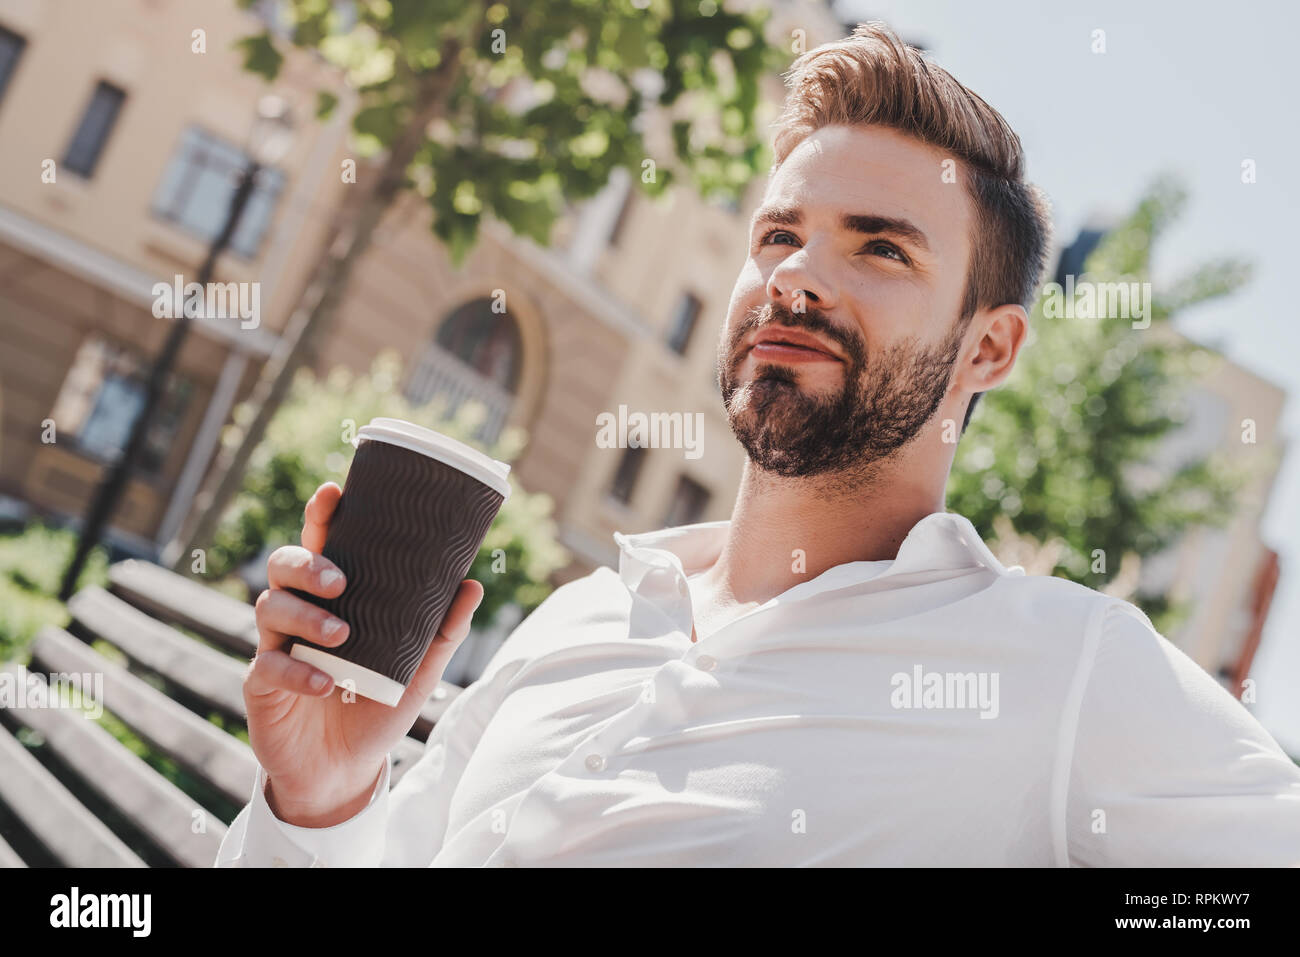 Close up of handsome young man sitting on a bench in the park and holding cup of coffee. Man dressed in a white shirt, looking away. Summertime, relax - Stock Image